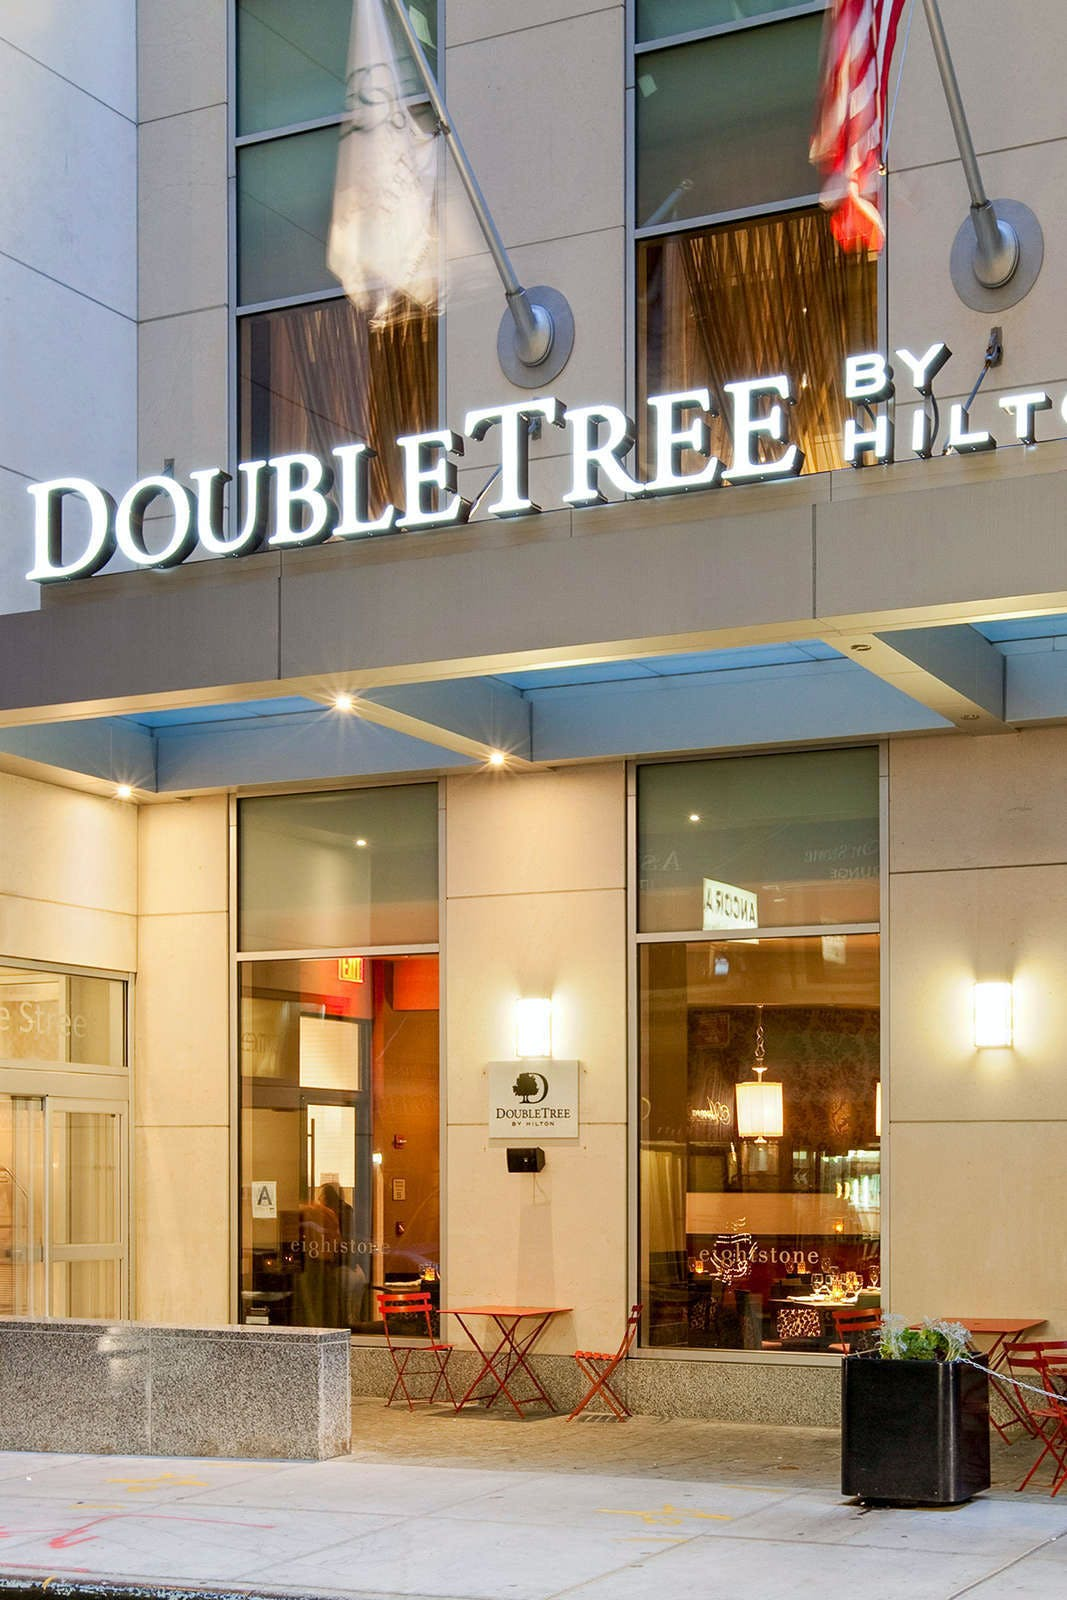 DoubleTree by Hilton Financial District